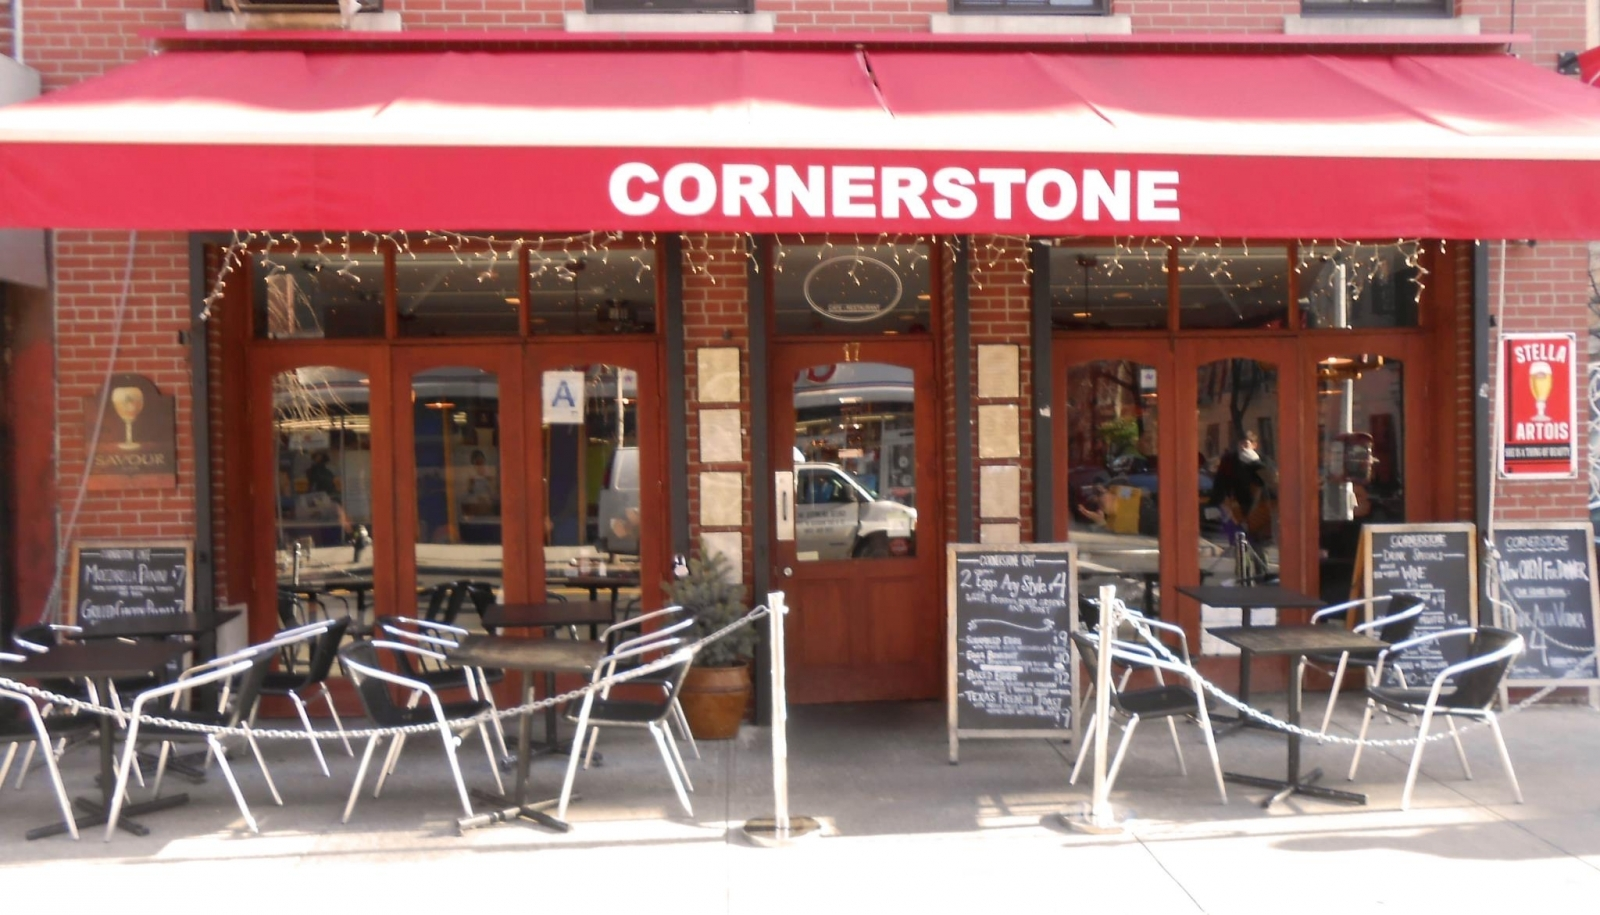 The Cornerstone Cafe on Avenue B in Manhattan's East Village